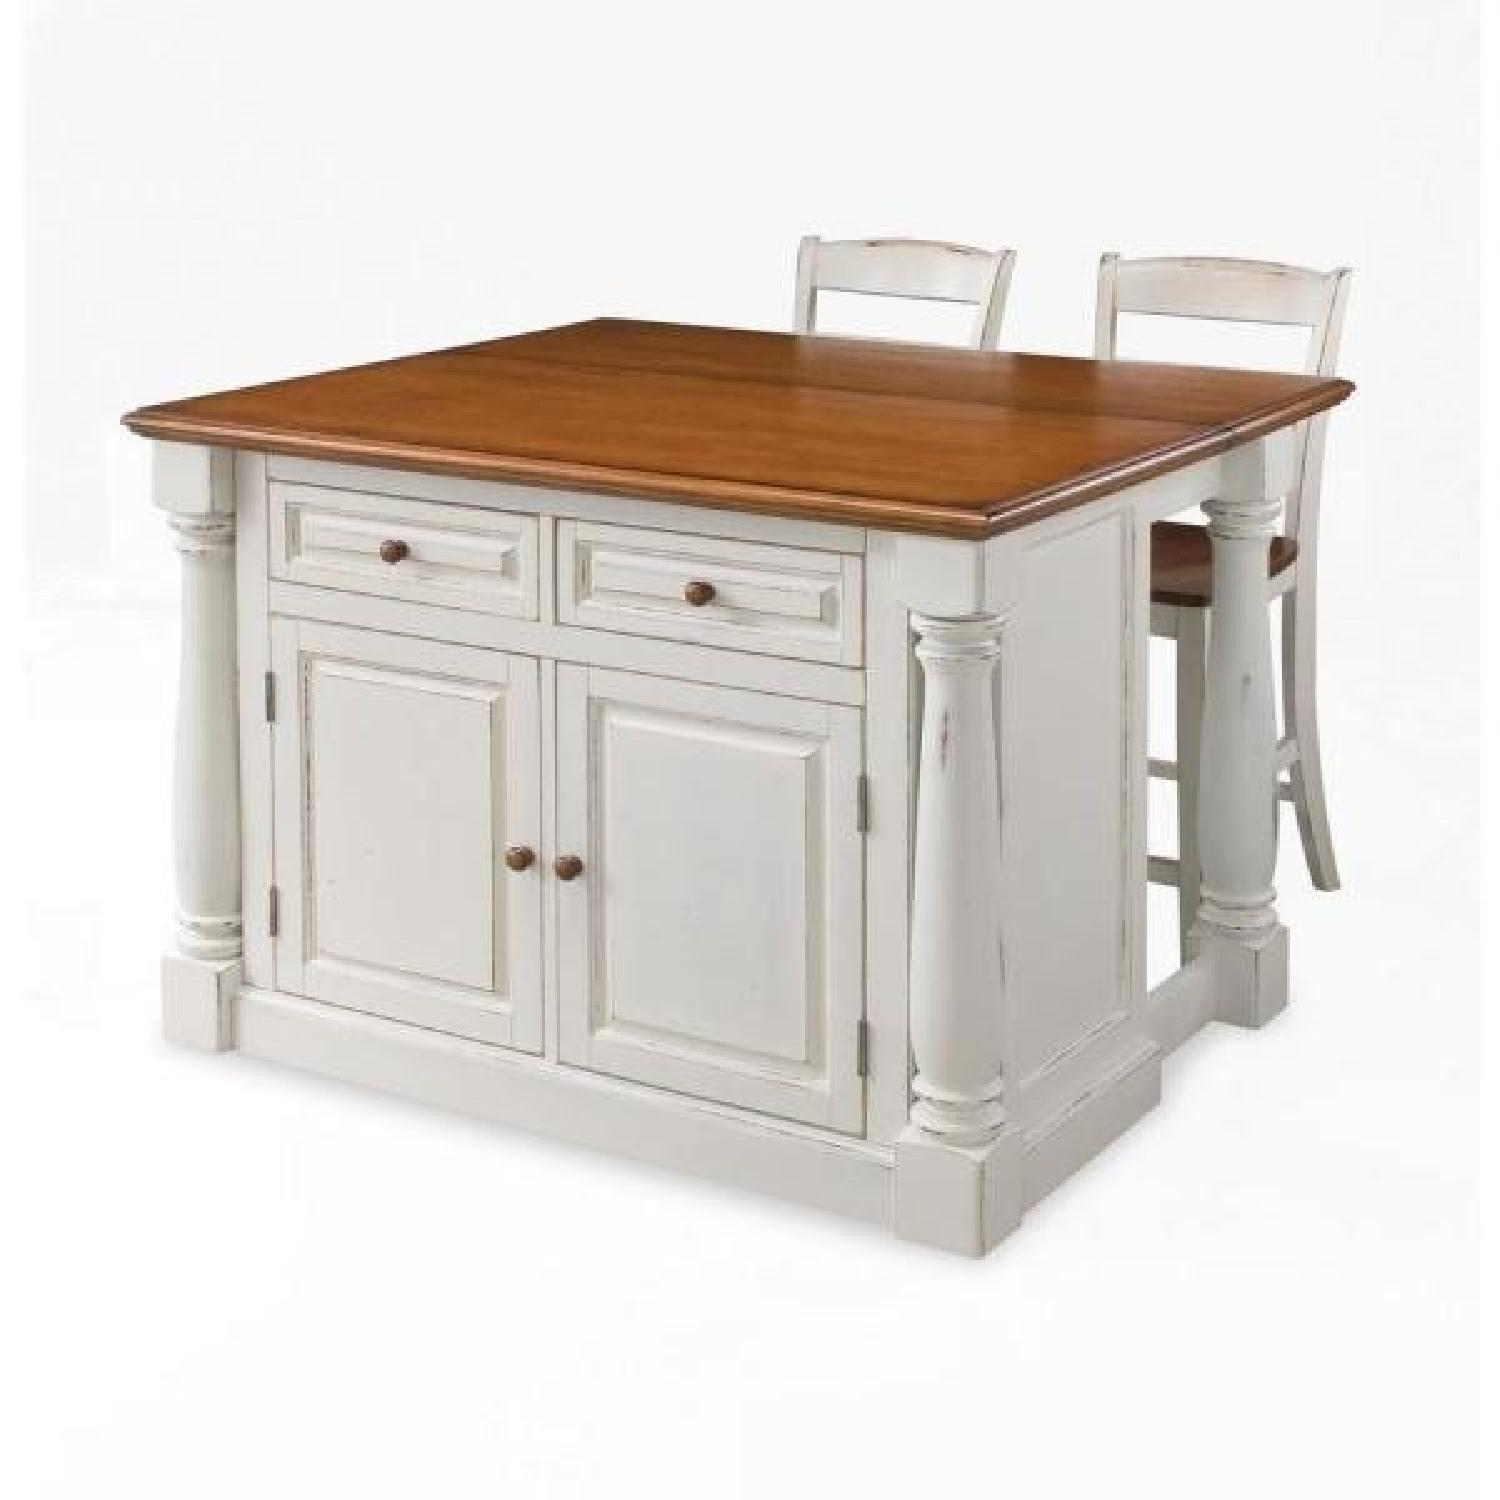 Home Styles Monarch White Kitchen Island w/ 2 Stools